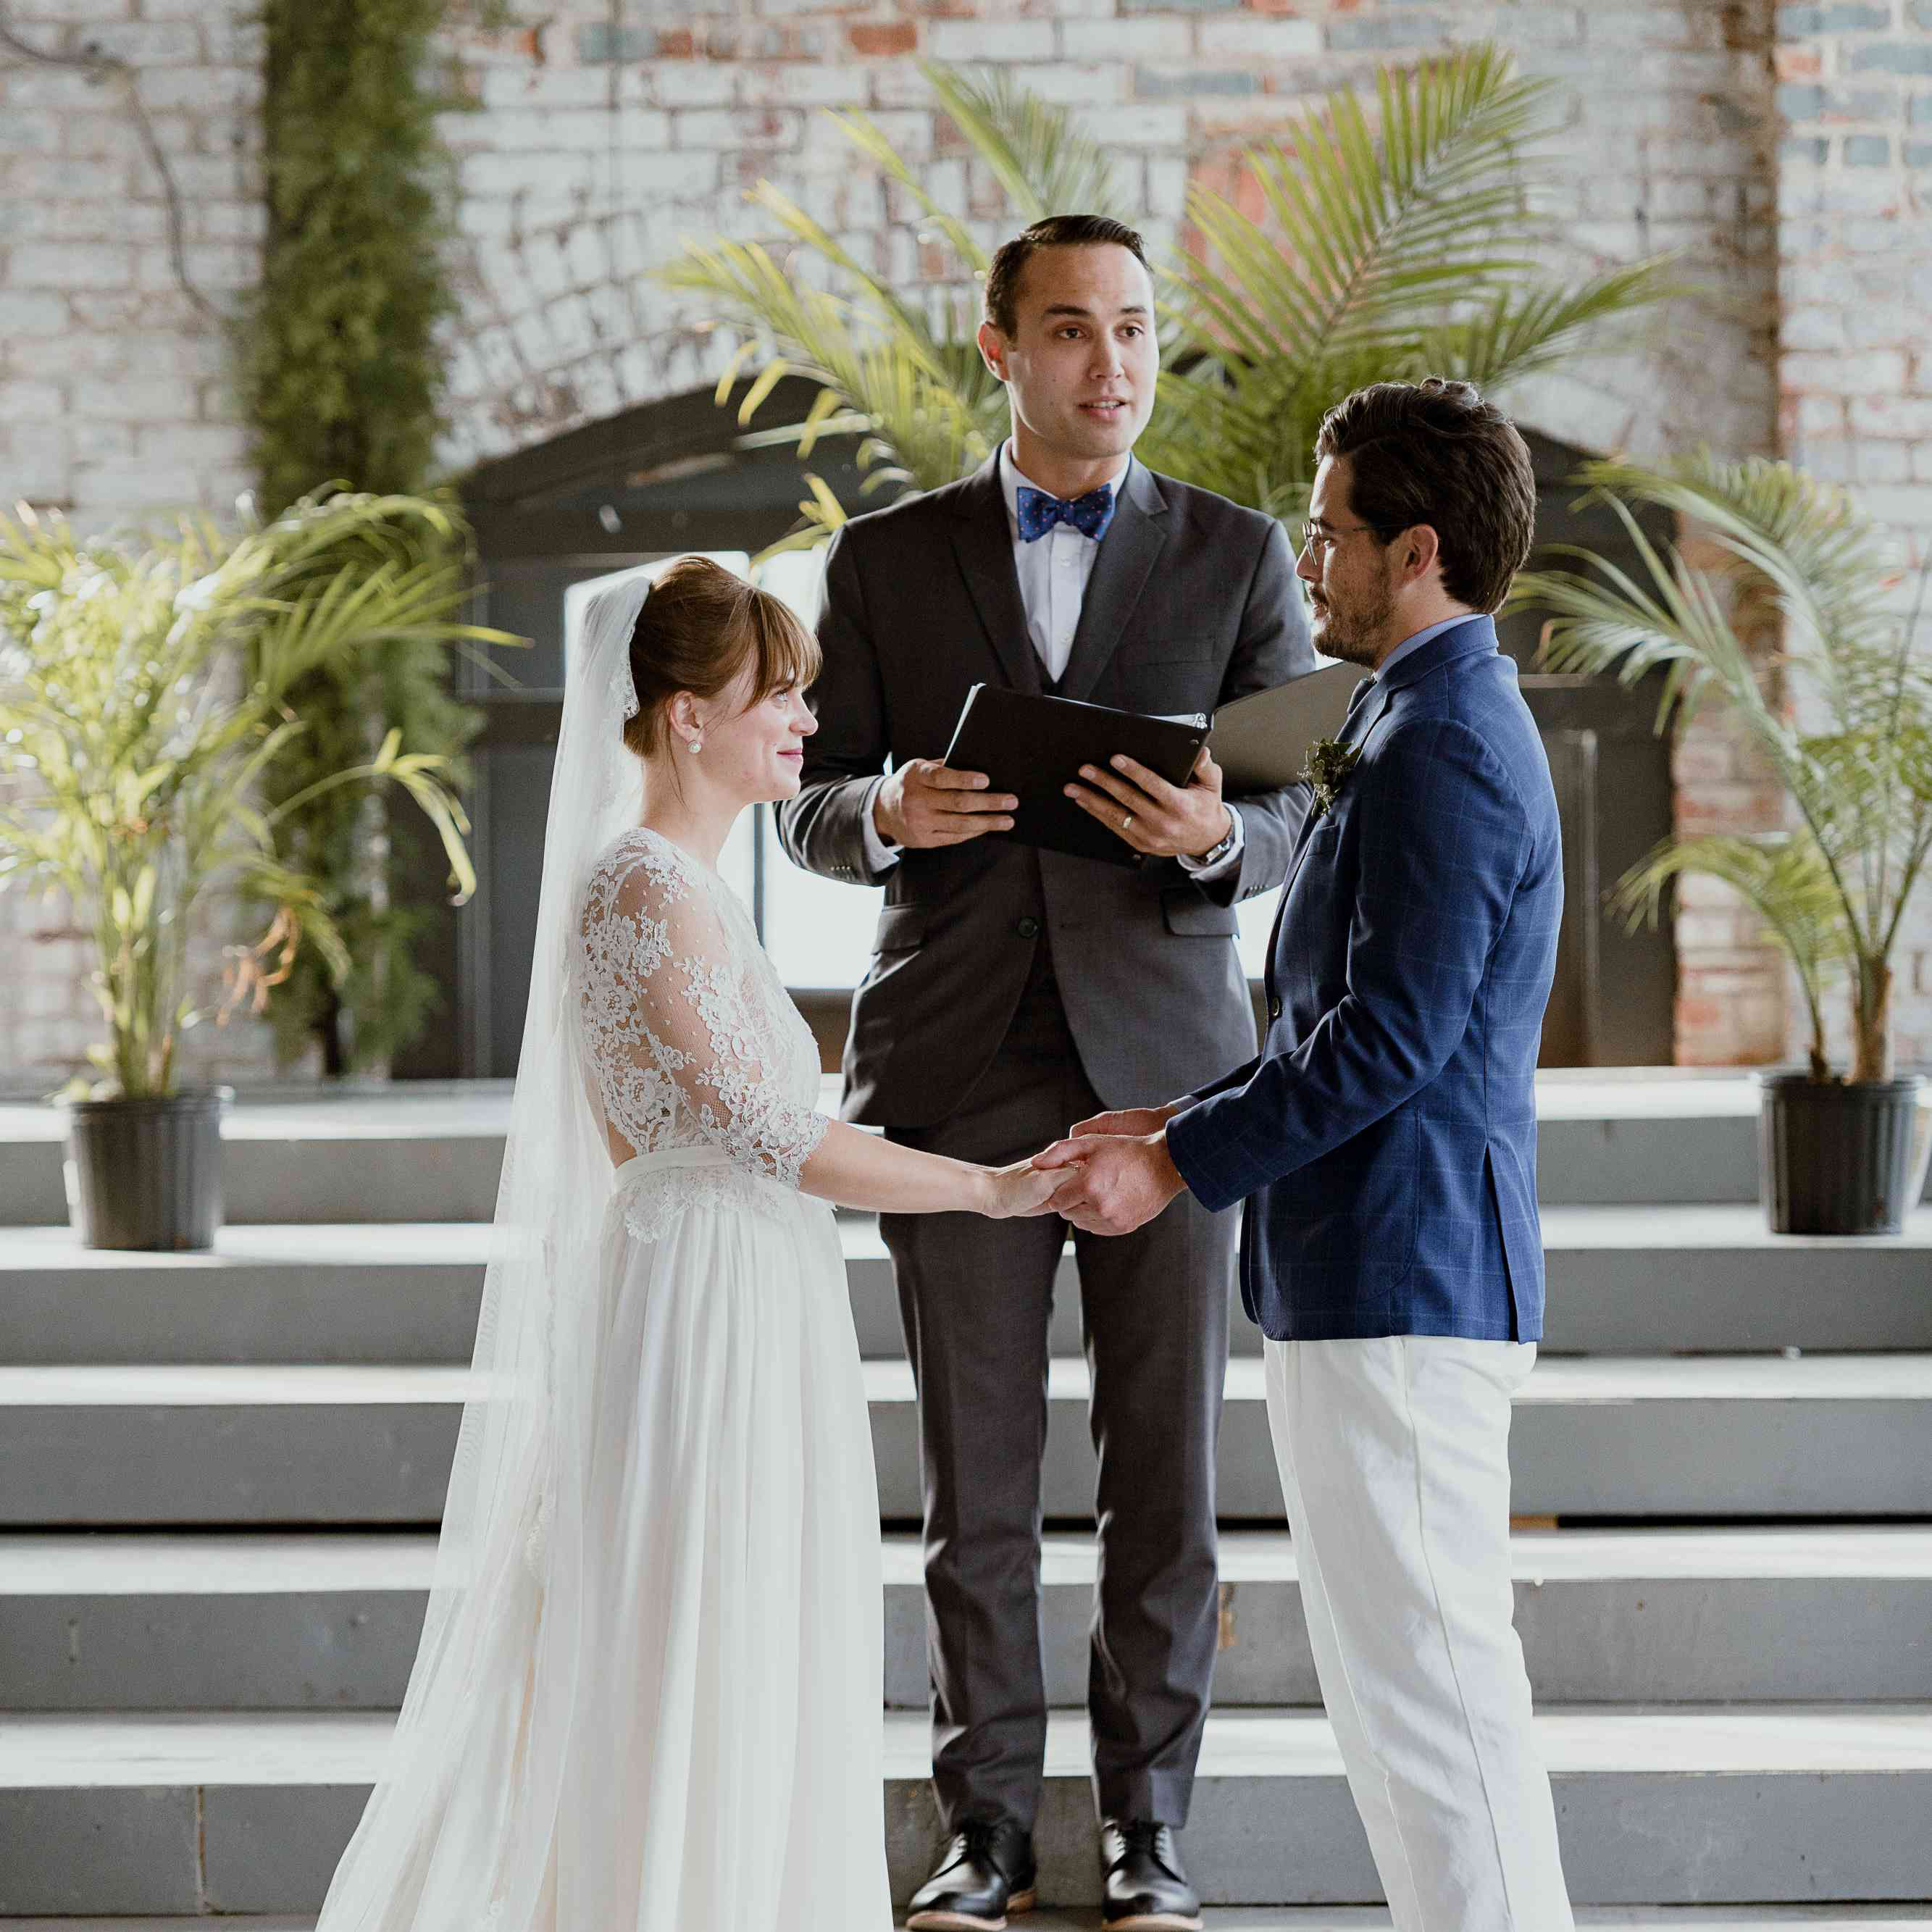 <p>ceremony couple at altar</p><br><br>